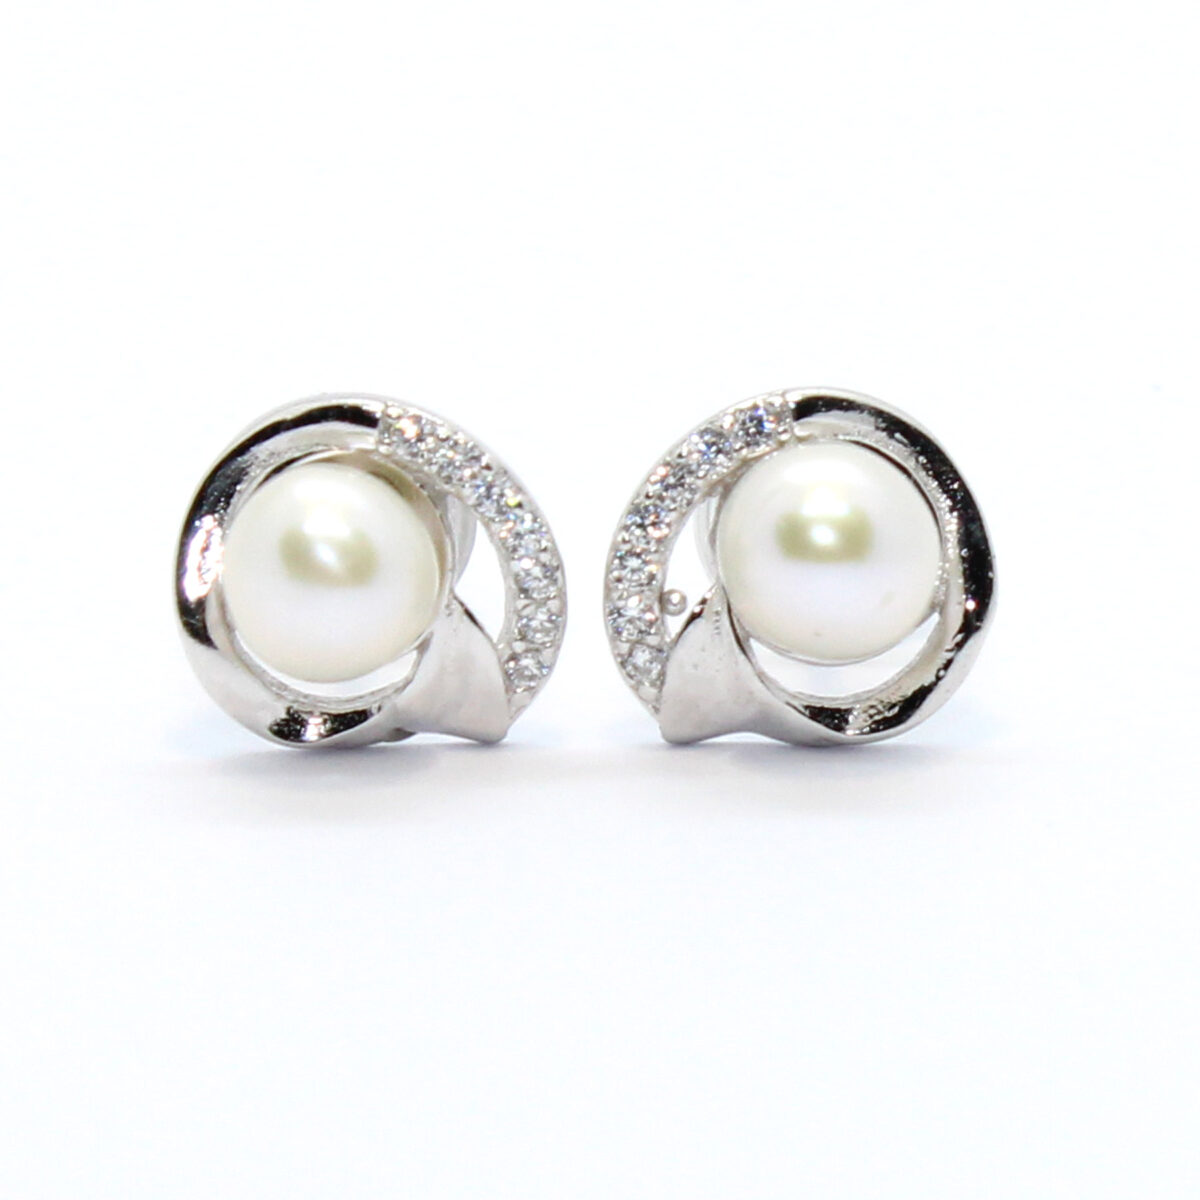 simple earrings in silver and cultured pearl